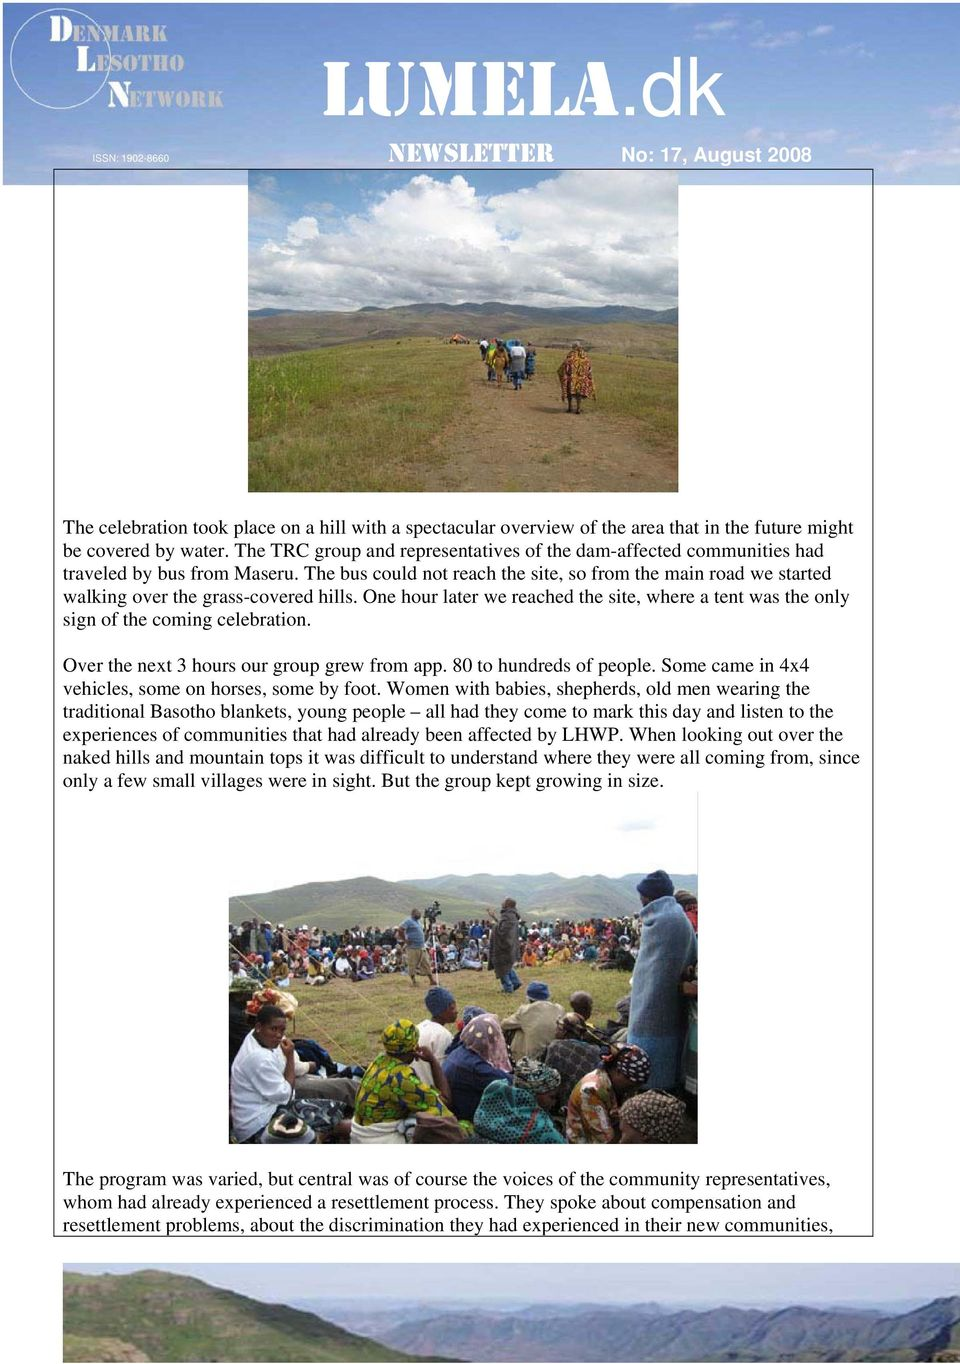 The bus could not reach the site, so from the main road we started walking over the grass-covered hills. One hour later we reached the site, where a tent was the only sign of the coming celebration.